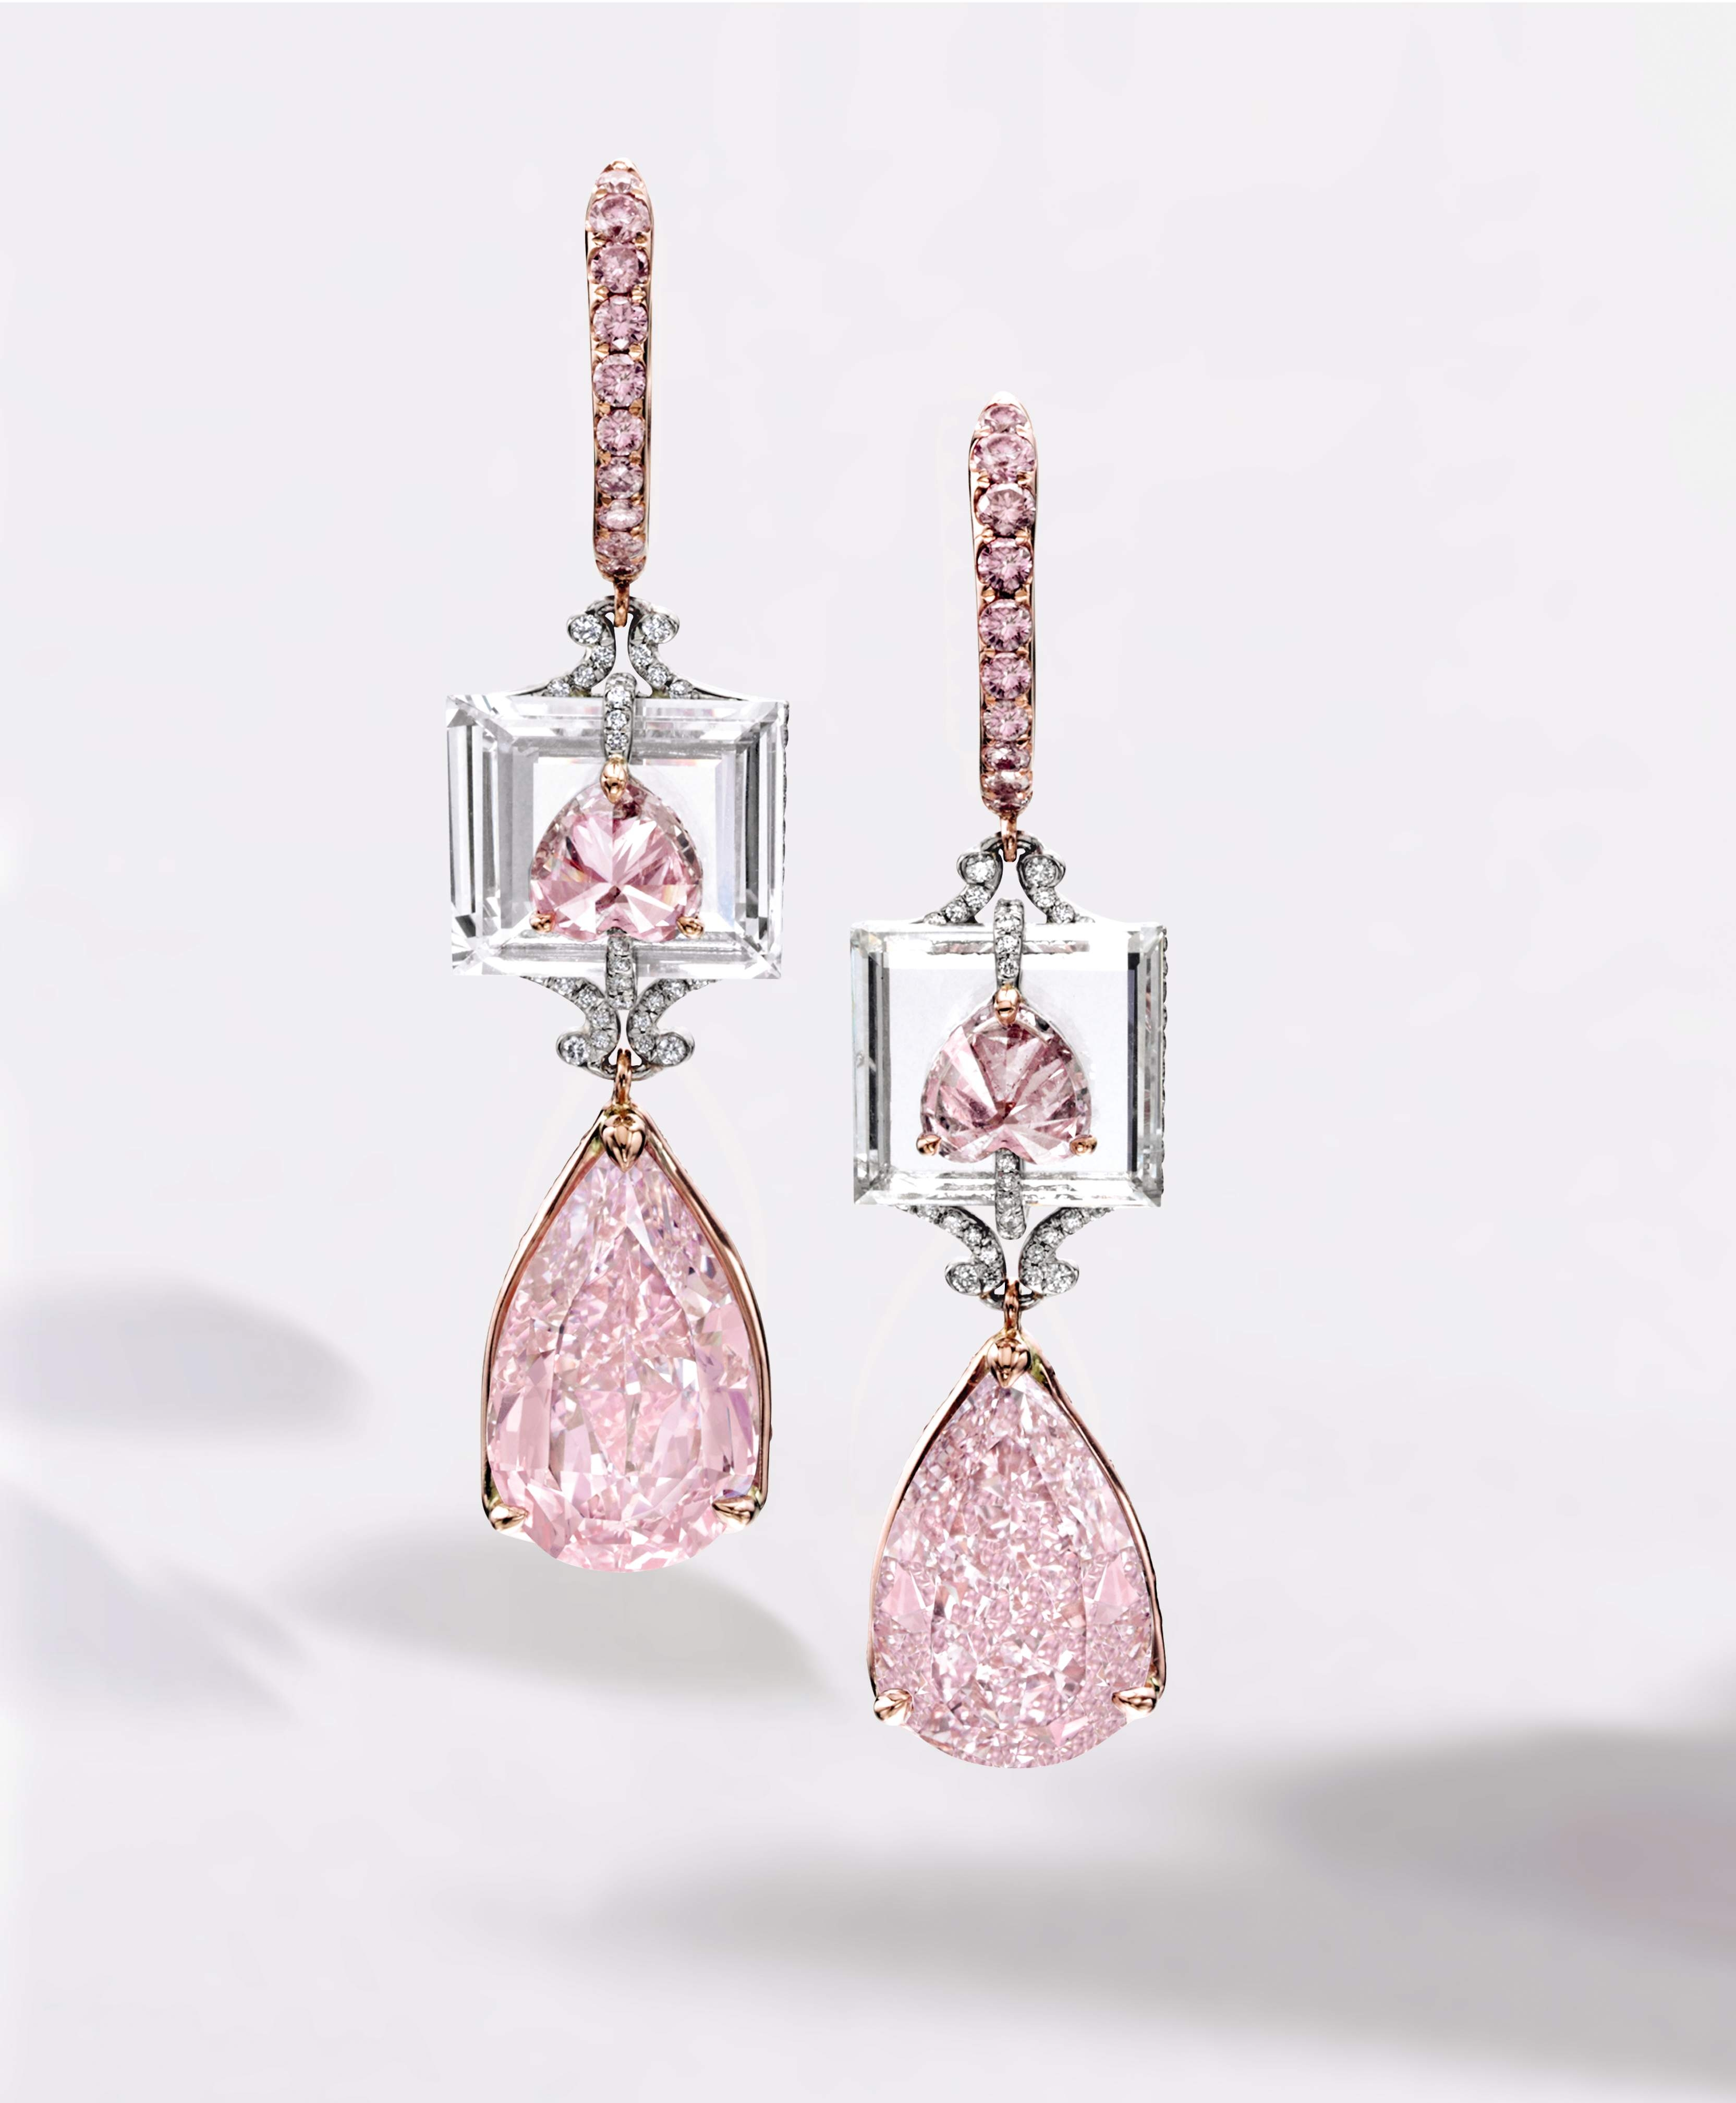 Auctions: Magnificent Jewels and Jadeite Spring Sale, Sotheby's Hong Kong